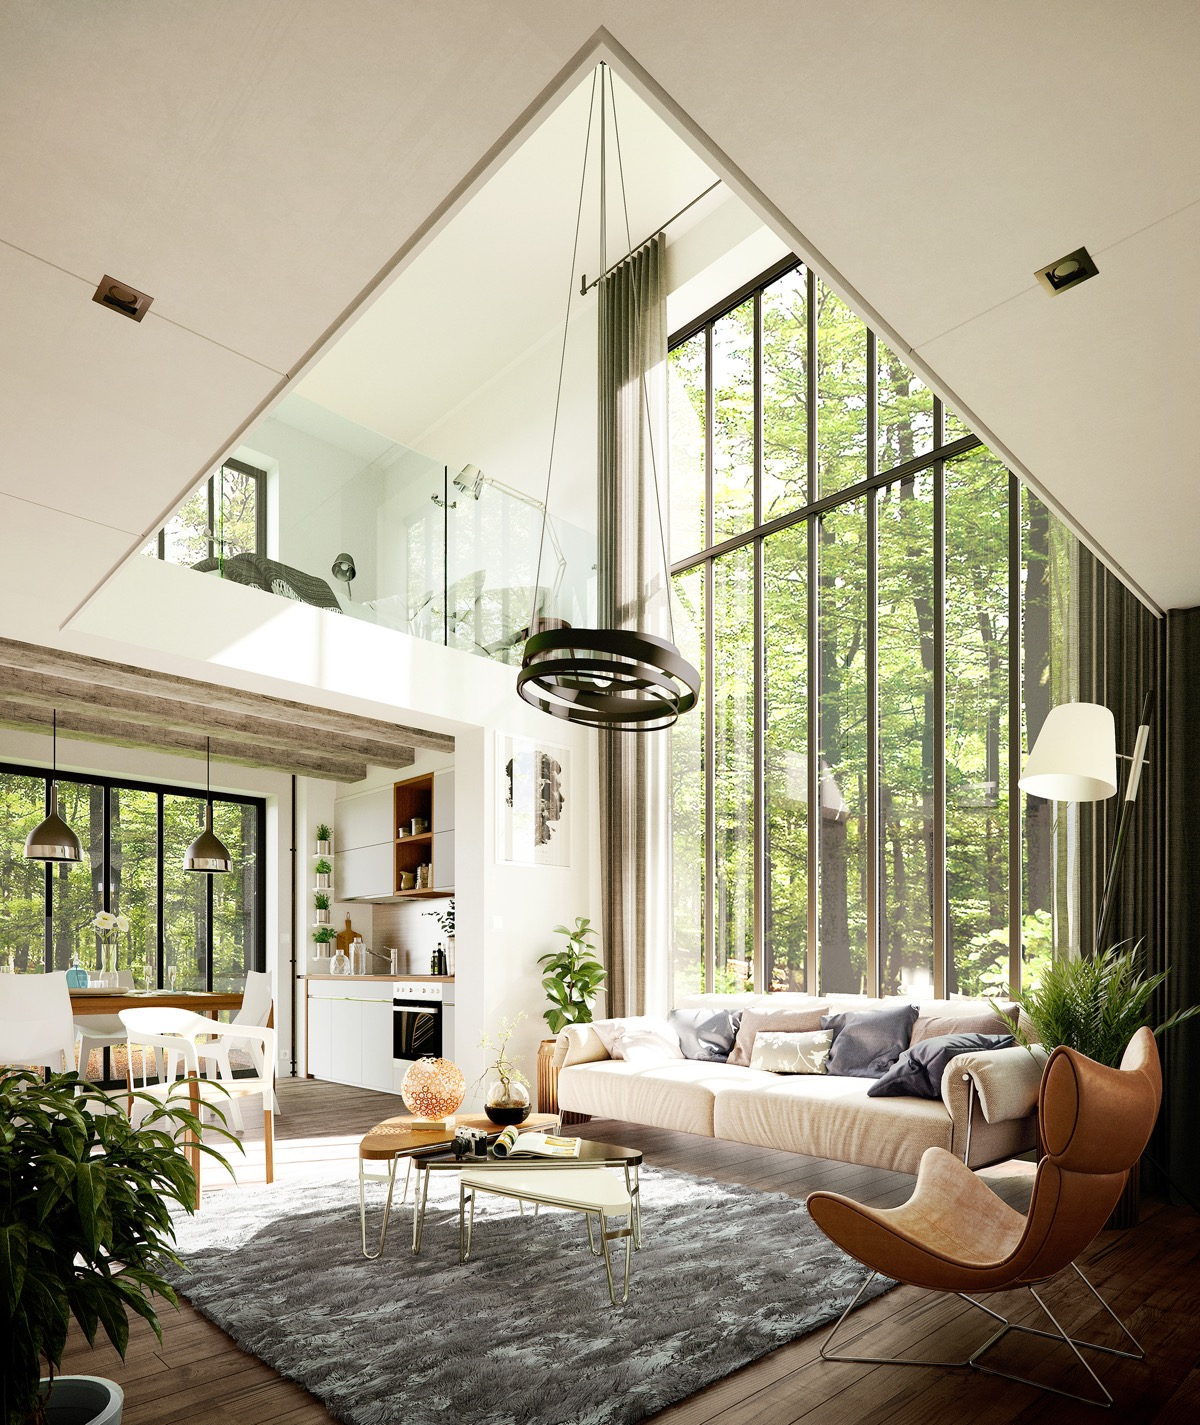 Beautiful Country Living Rooms With Mid Century Modern Furniture High Ceilings Large Windows - 53 Cool Living Rooms With Irresistible Modern Appeal